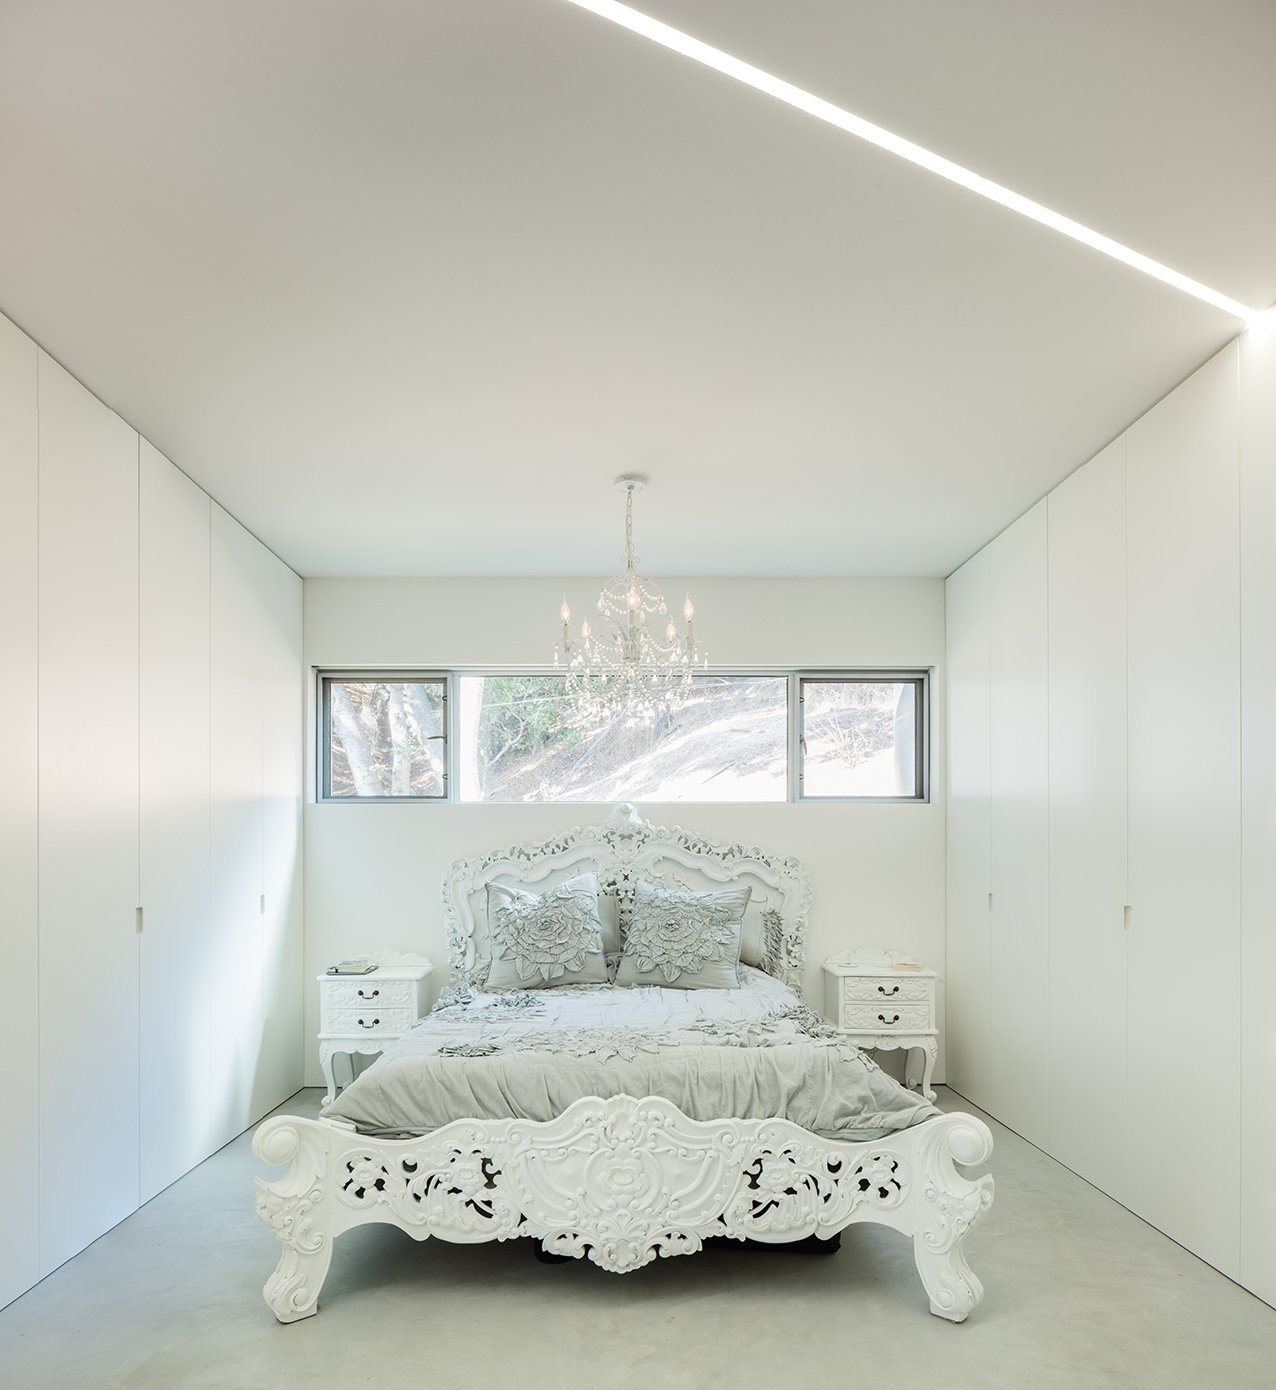 Bedroom, Bed, Night Stands, and Pendant Lighting Ornate furnishings in the bedrooms offer an intriguing contrast to the rest of the house. - Cupertino, California Dwell Magazine : September / October 2017  Photo 9 of 10 in The Conversation Pit Makes a Much-Appreciated Comeback at an Ultramodern Home in Cupertino